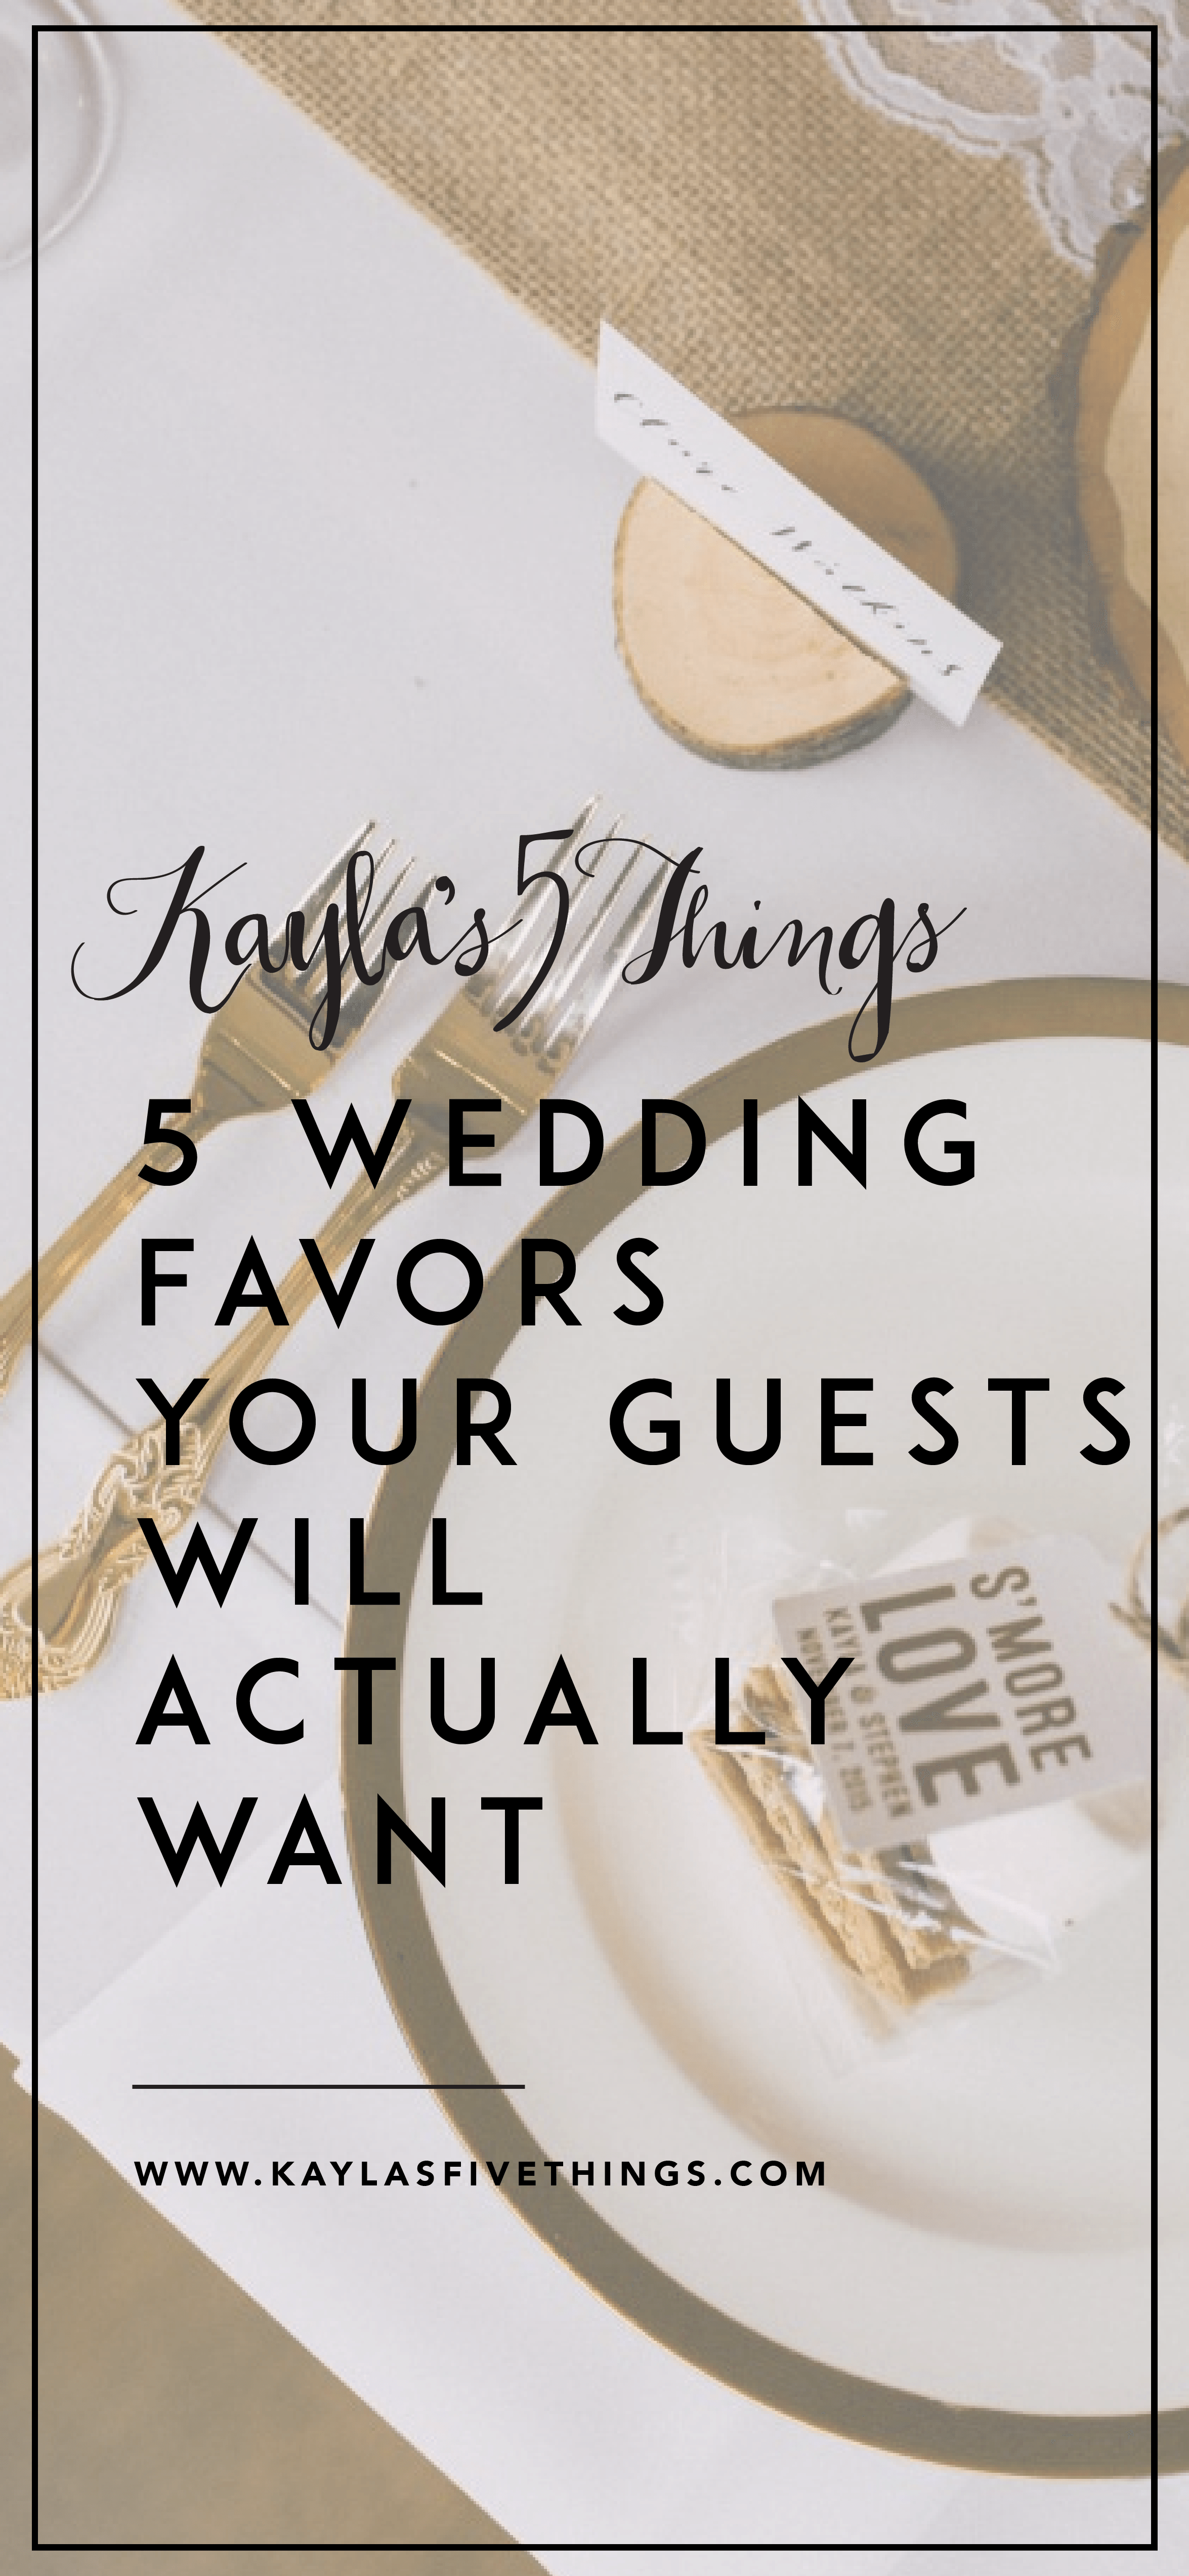 5 wedding favors your guests will actually want   Favors, Weddings ...